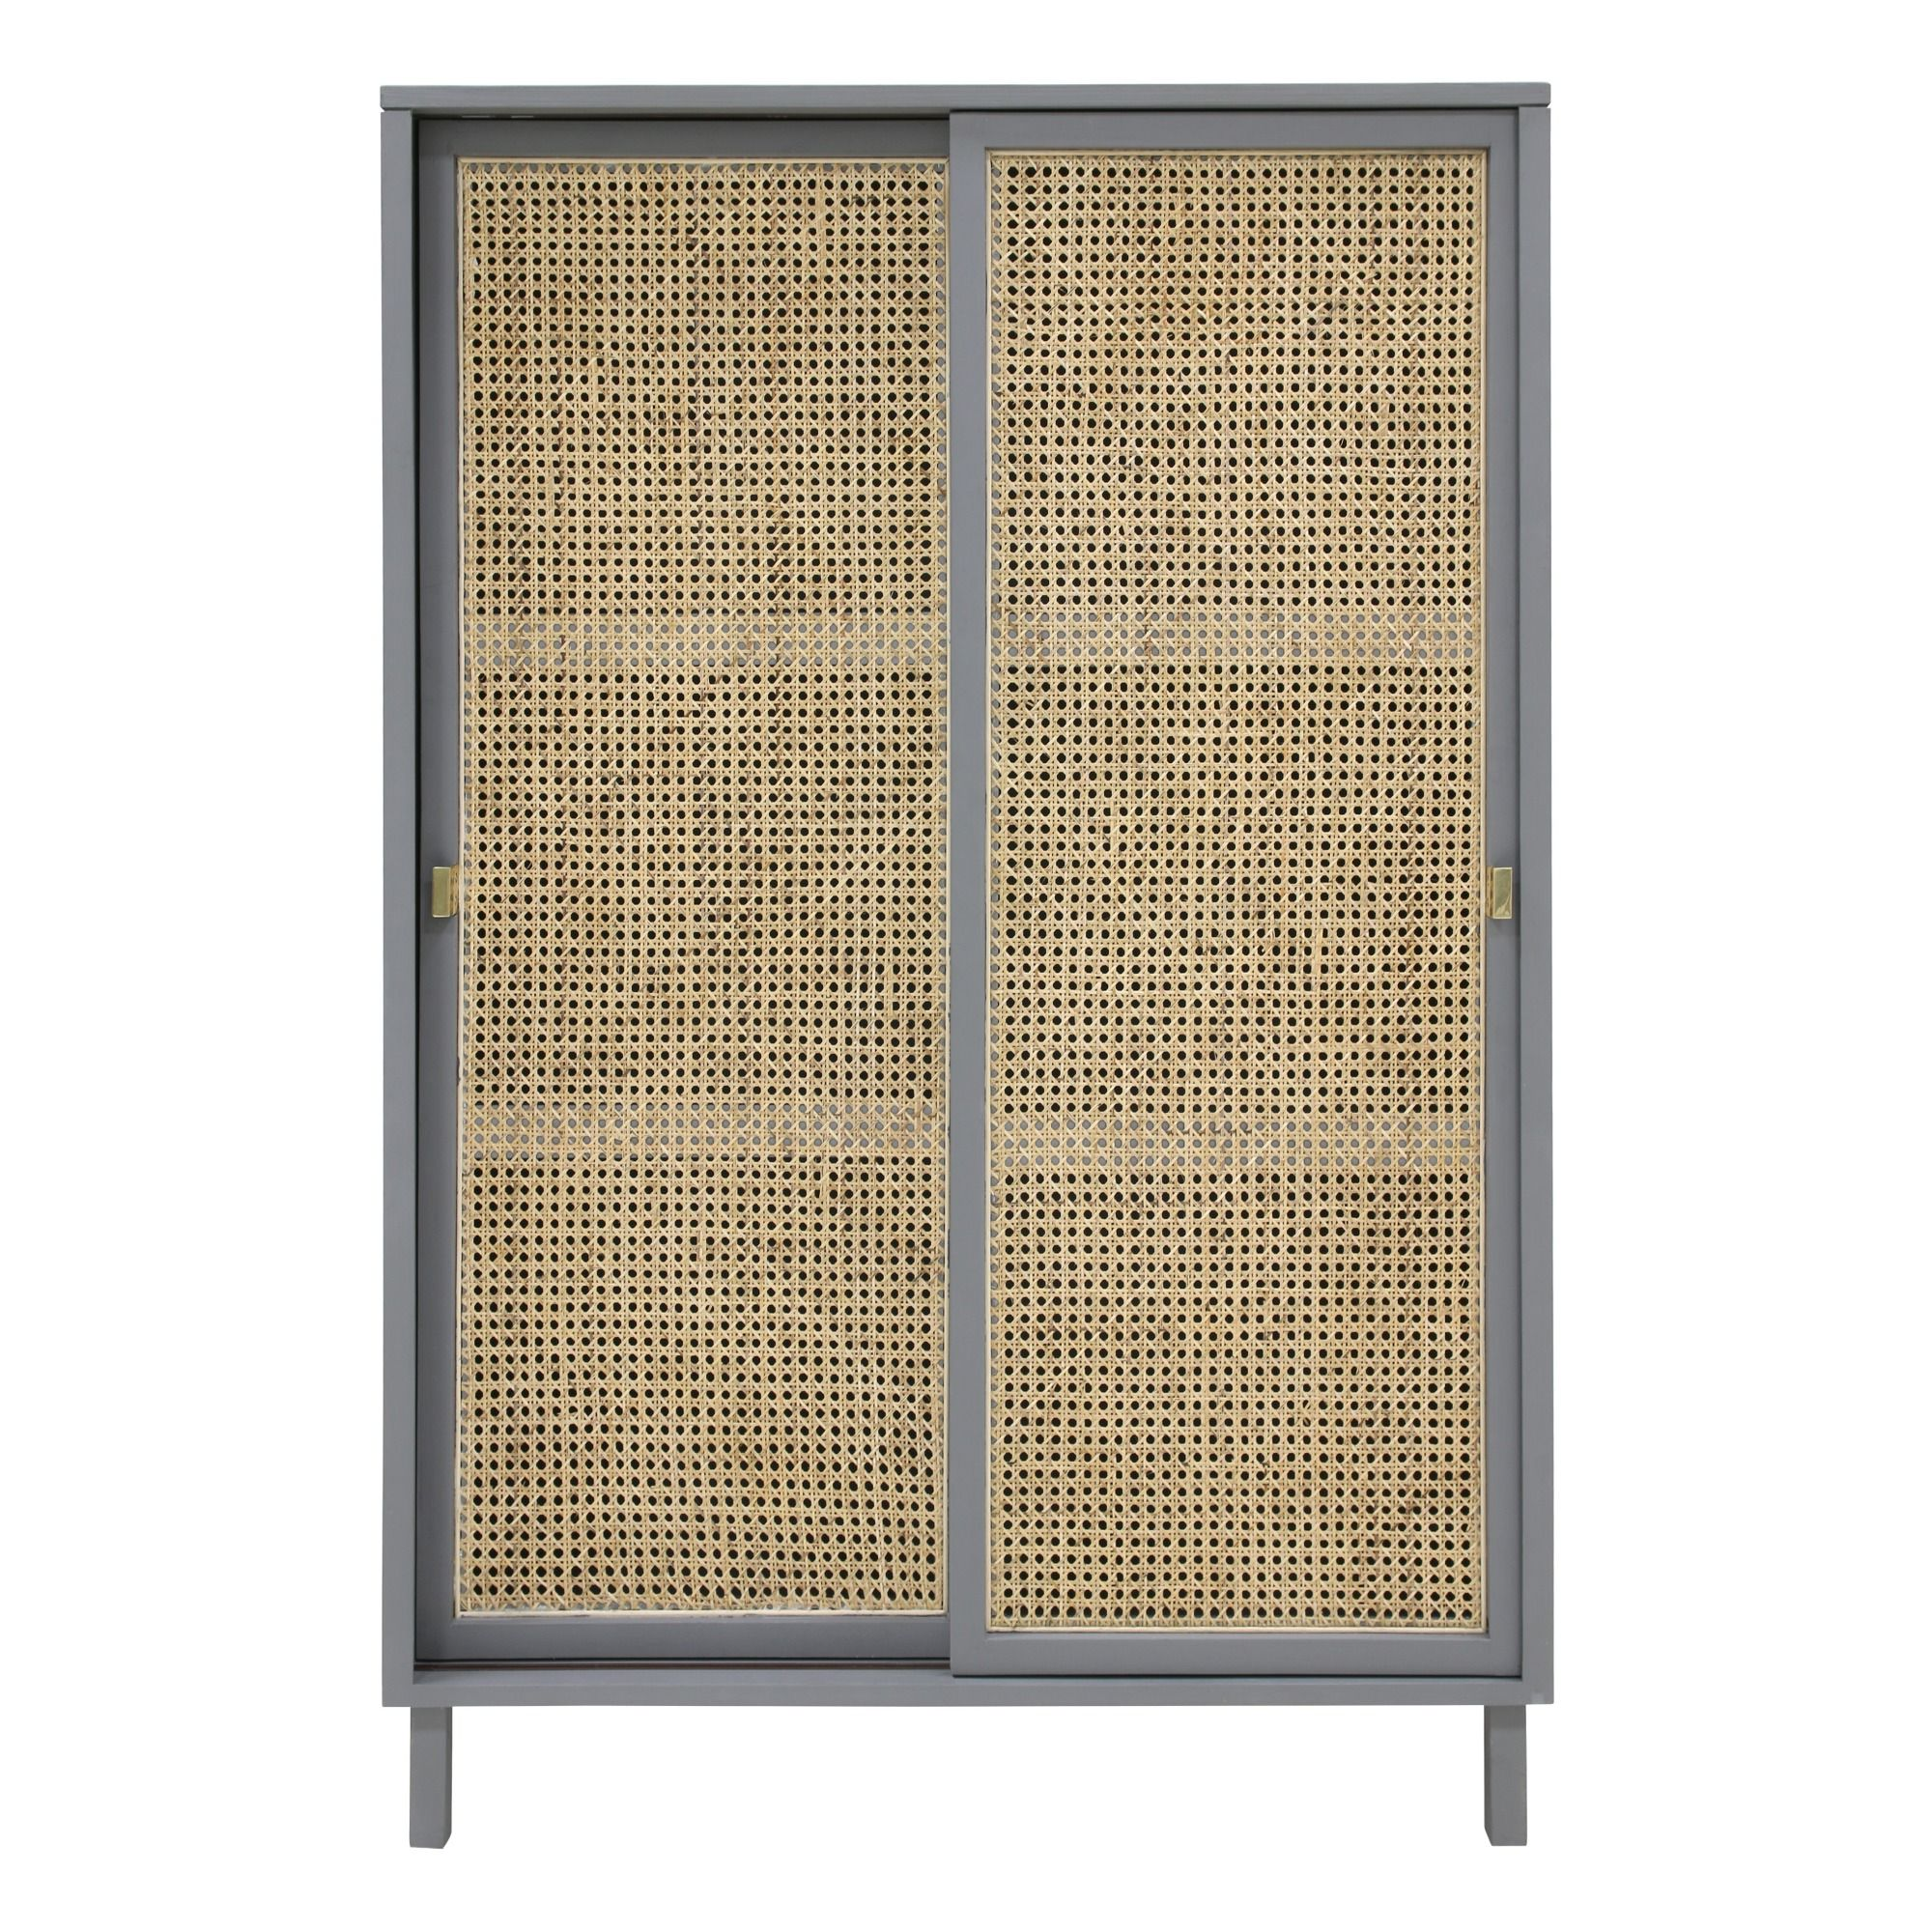 Wicker Armoire Natural In 2020 Sliding Doors Wooden Cabinets